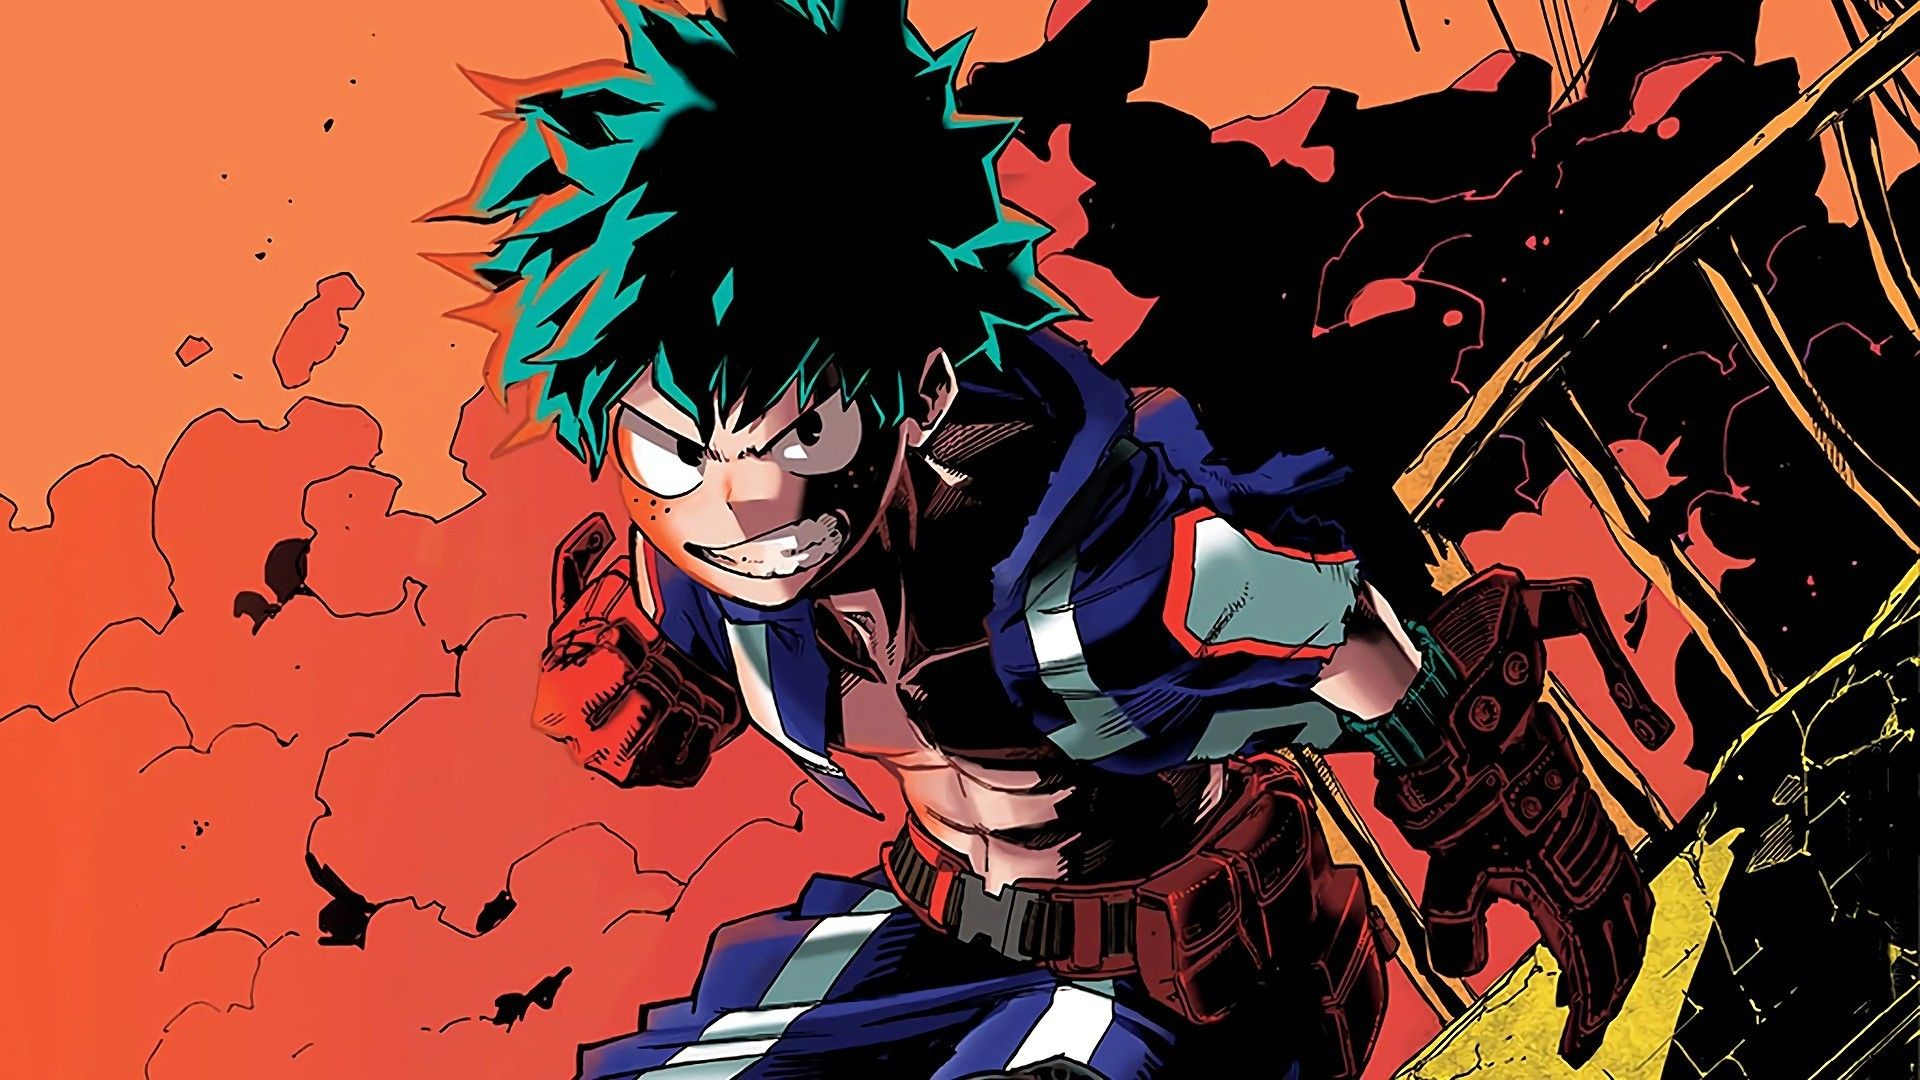 Large My Hero Academia Wallpaper 1920x1080 For Tablet 1920x1080 Hero Wallpaper My Hero My Hero Academia